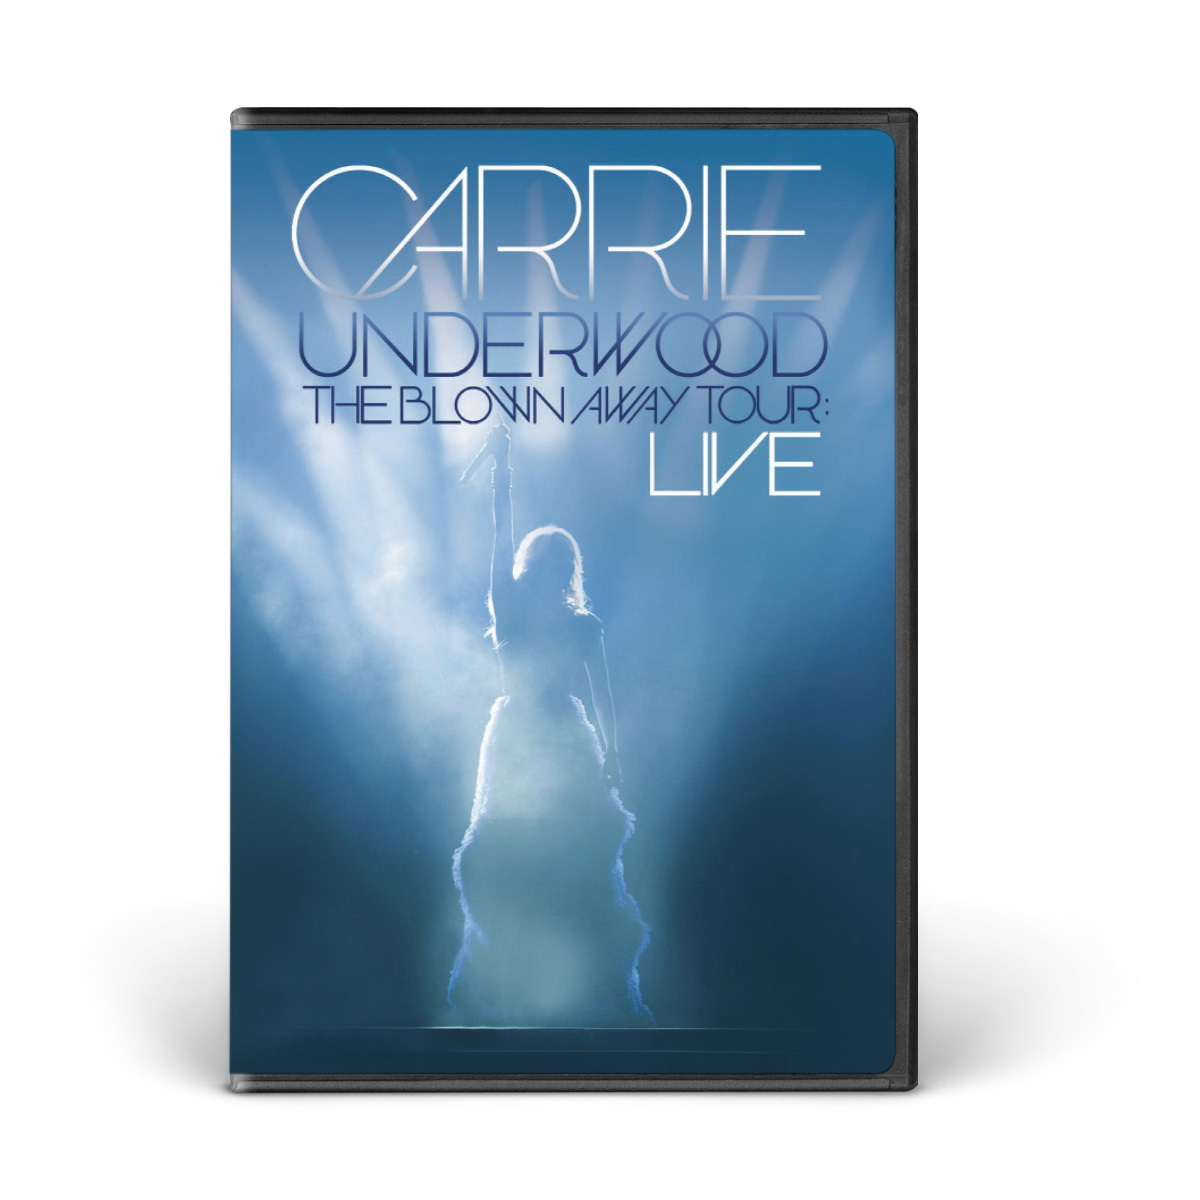 Carrie Underwood: The Blown Away Tour: Live DVD